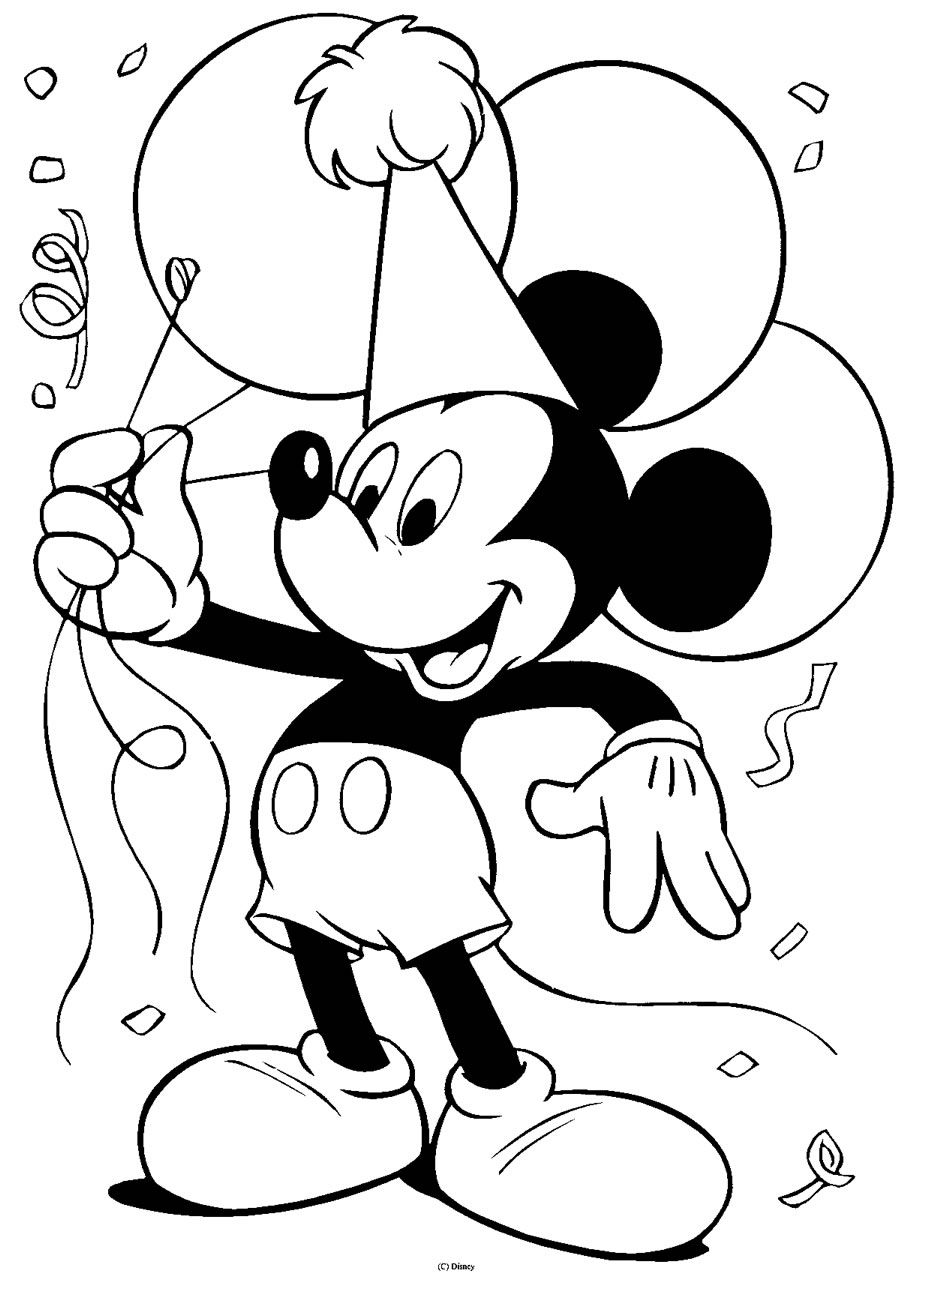 Color Drawing To Print Famous Characters Walt Disney Mickey Mouse Minni Mickey Mouse Coloring Pages Mickey Coloring Pages Happy Birthday Coloring Pages